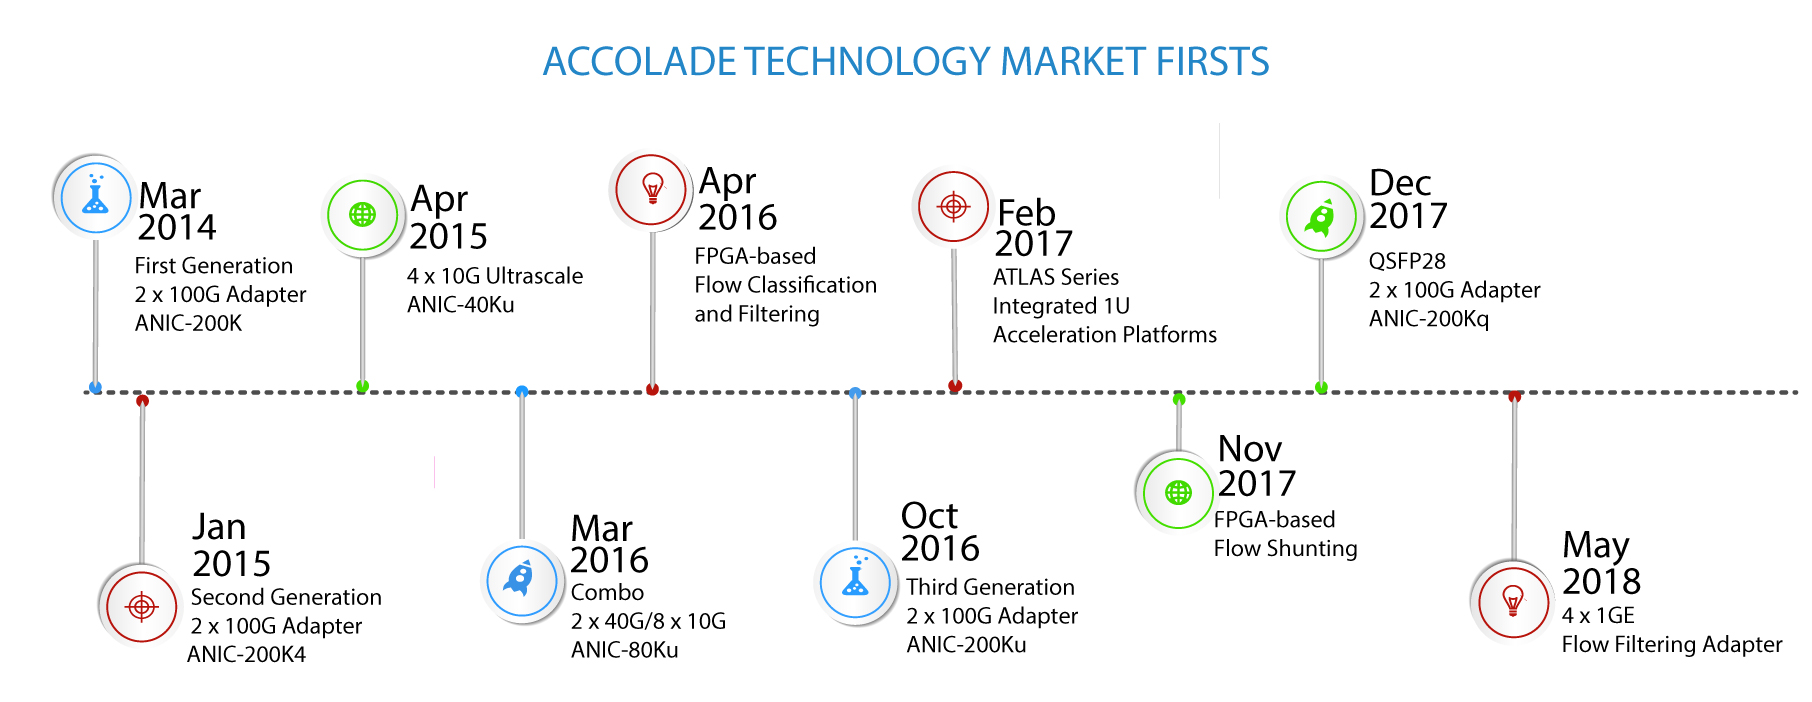 Accolade Technology Milestones